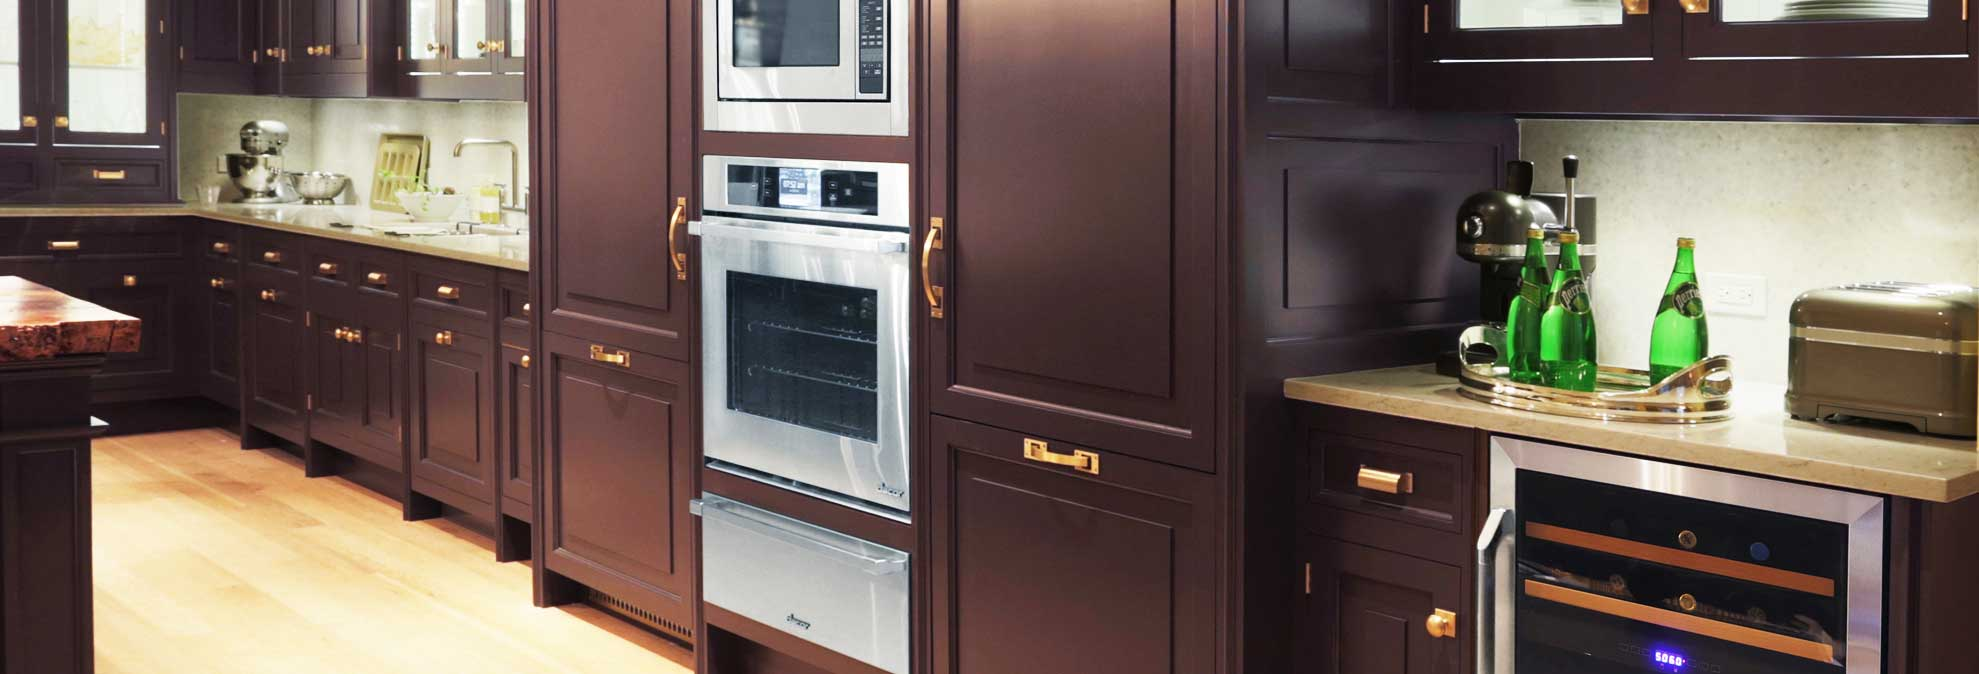 Kitchen Kitchen Consumer Reports Kitchen Cabinets